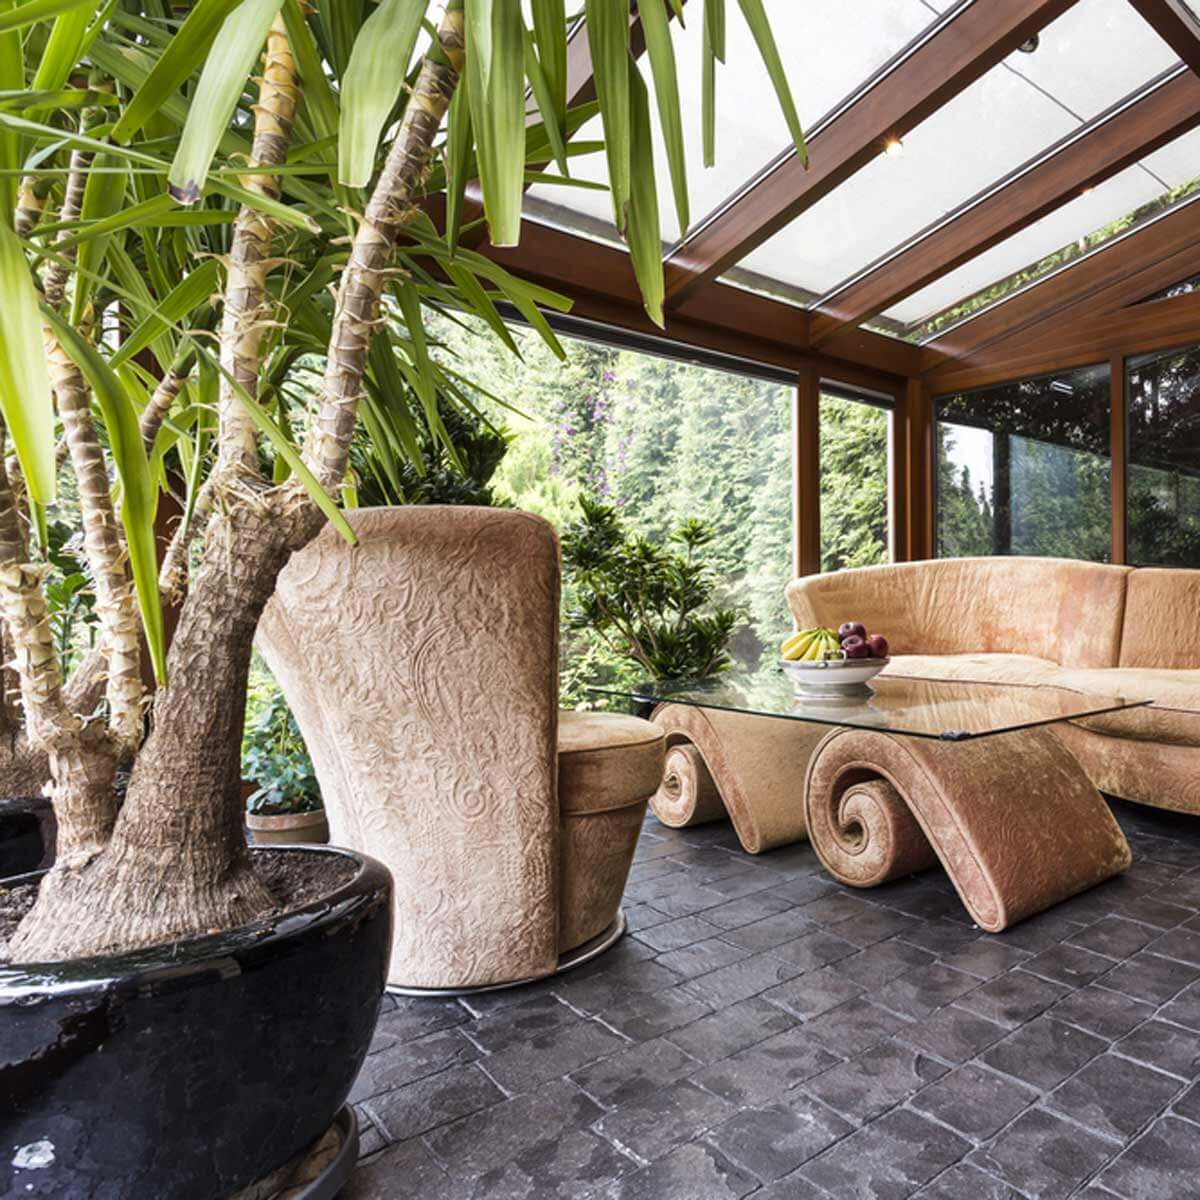 Have a Lot of Plants to Bring Indoors? Build a Sunroom